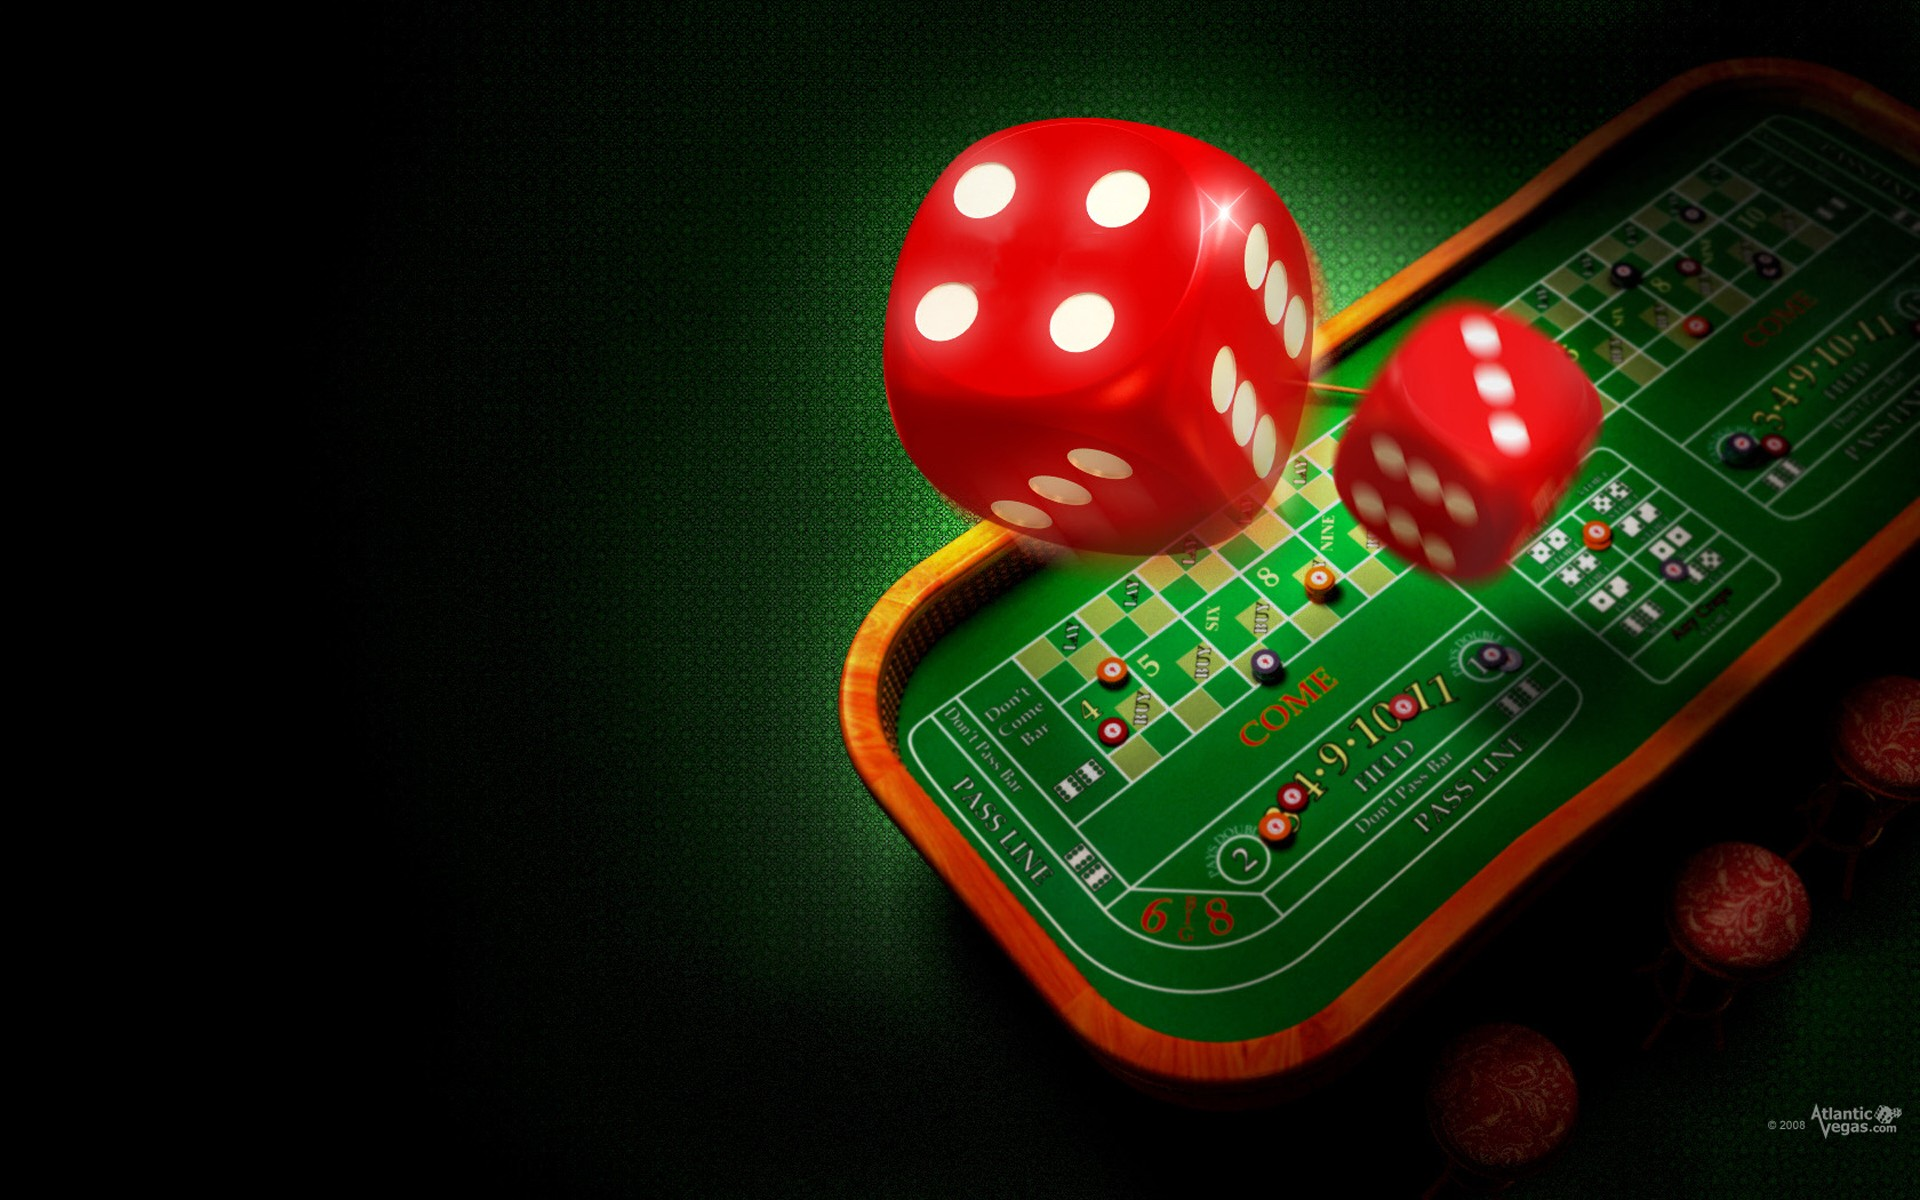 Queries For/About Casino